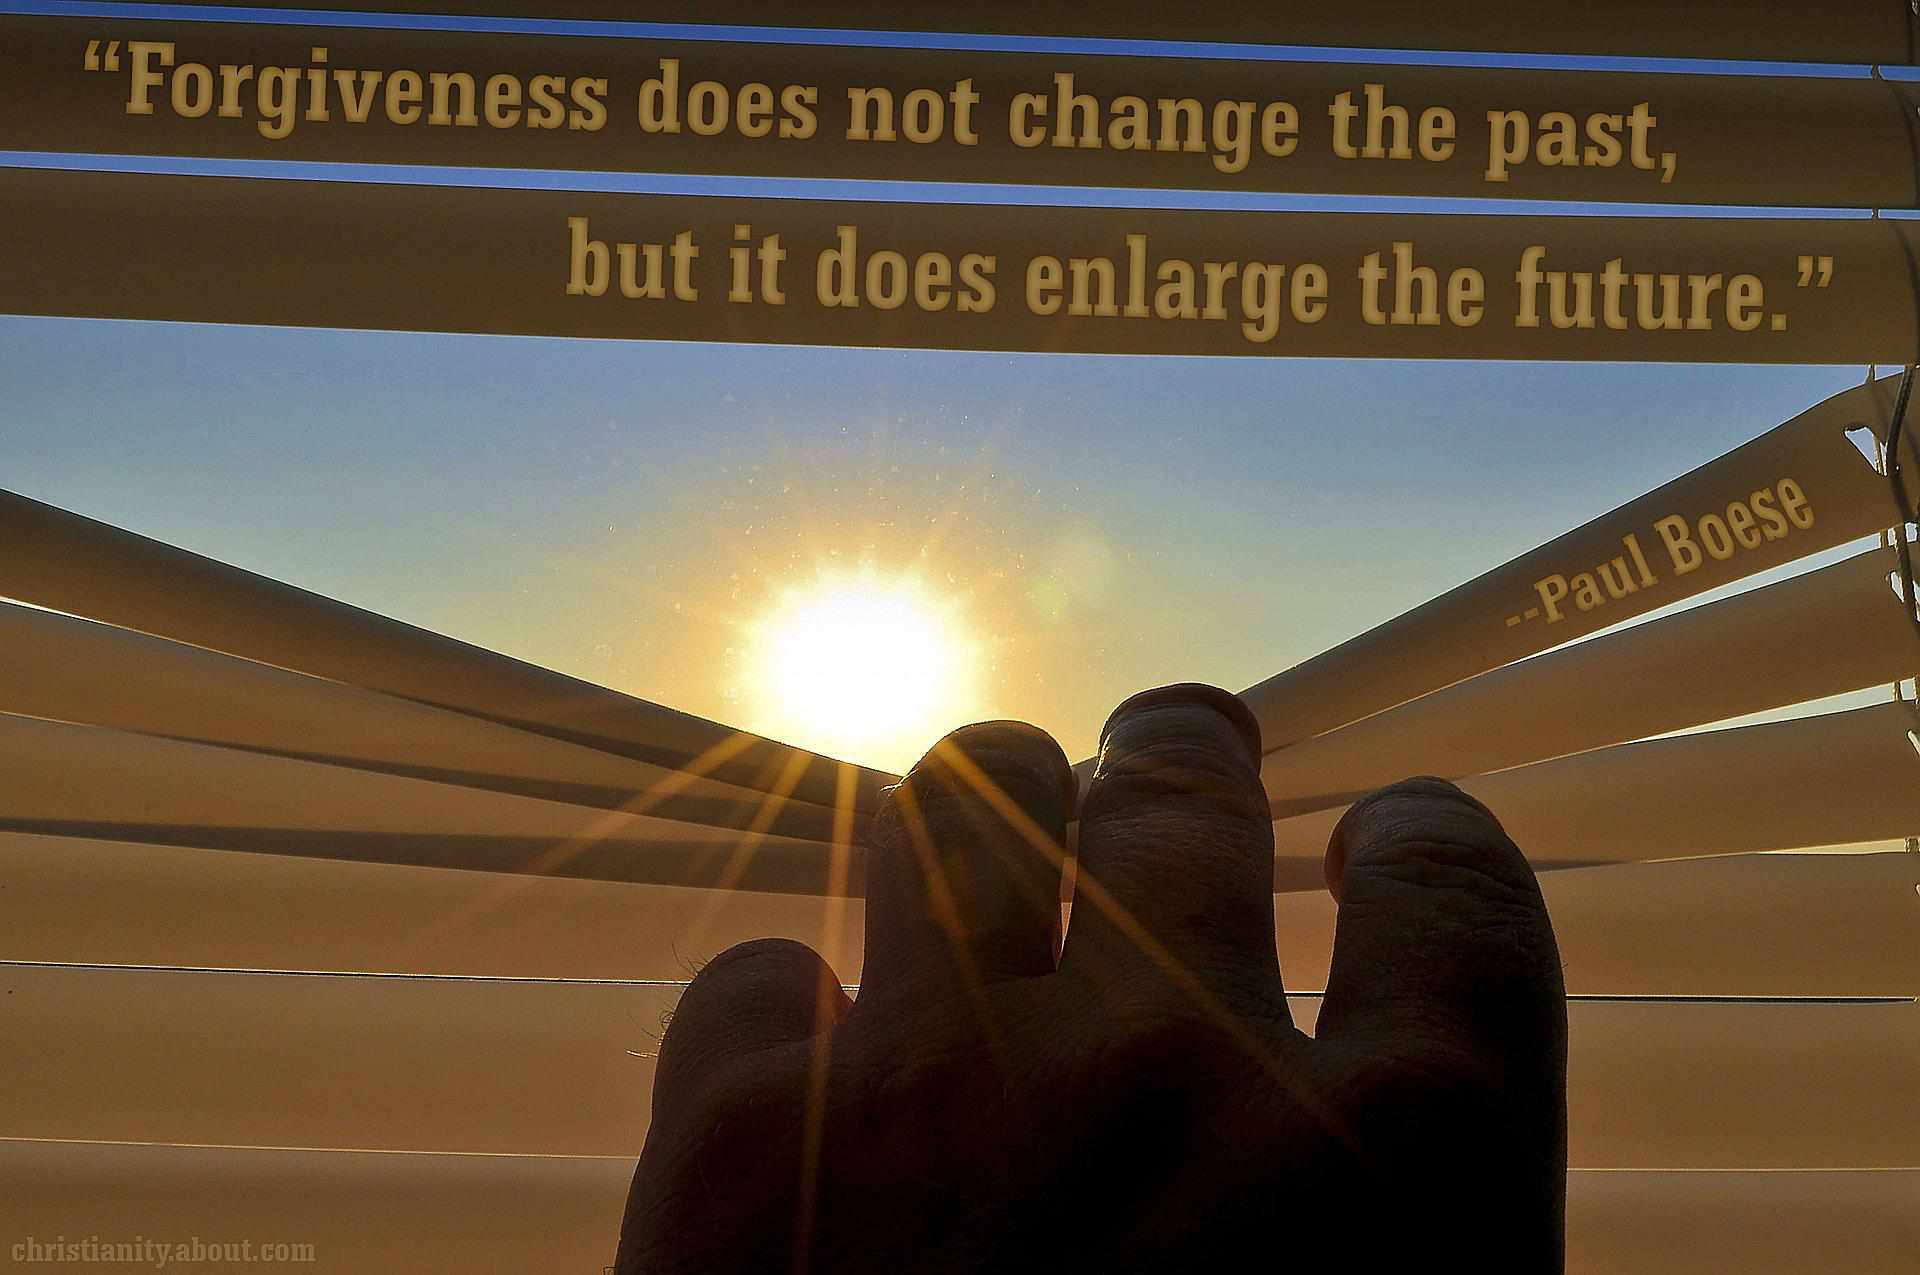 Forgiveness Enlarges Our Future